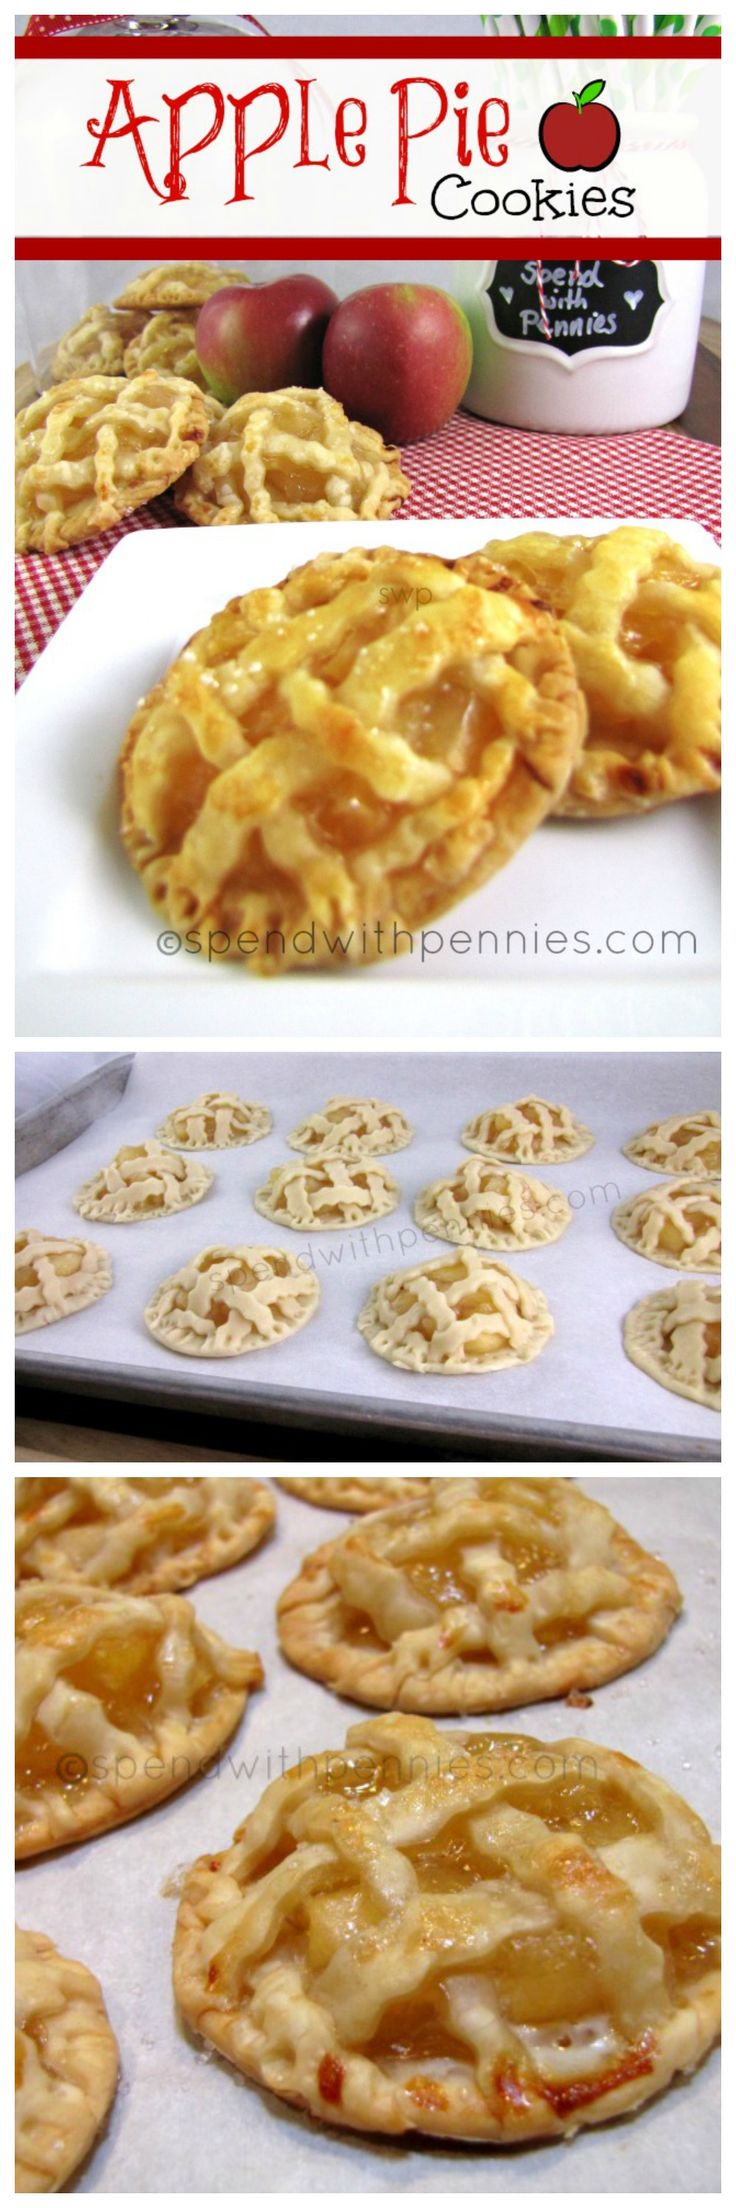 Super Yummy Apple Pie Cookies recipe! These cookies are unlike any other with a pastry crust and warm apple pie filling!